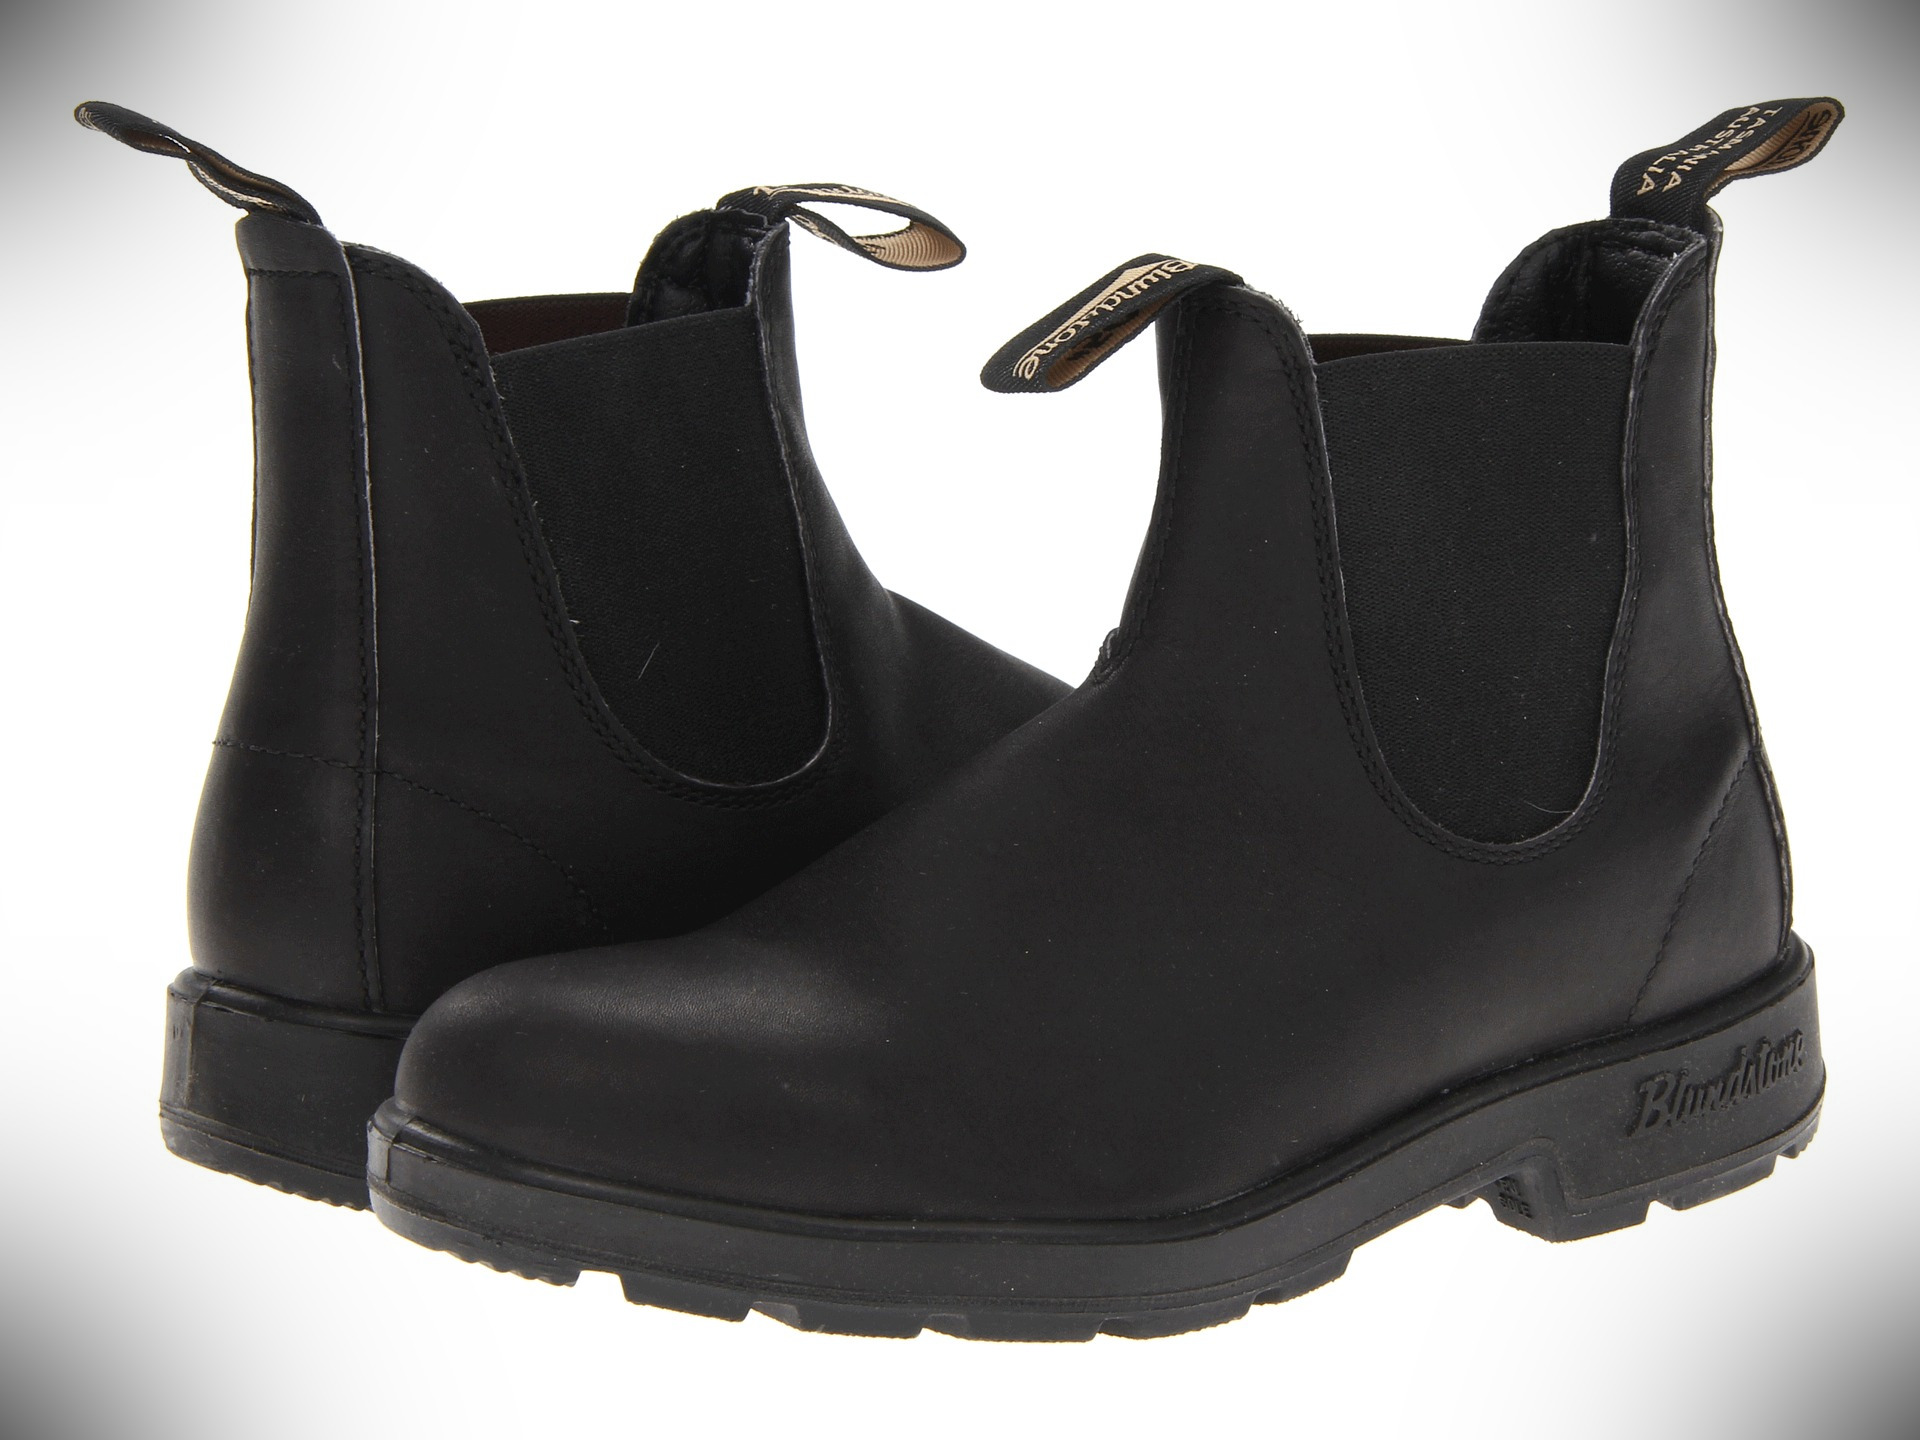 48d9df42b28 Stay Dry While Walking Wet: 15 Best Waterproof Boots for Men